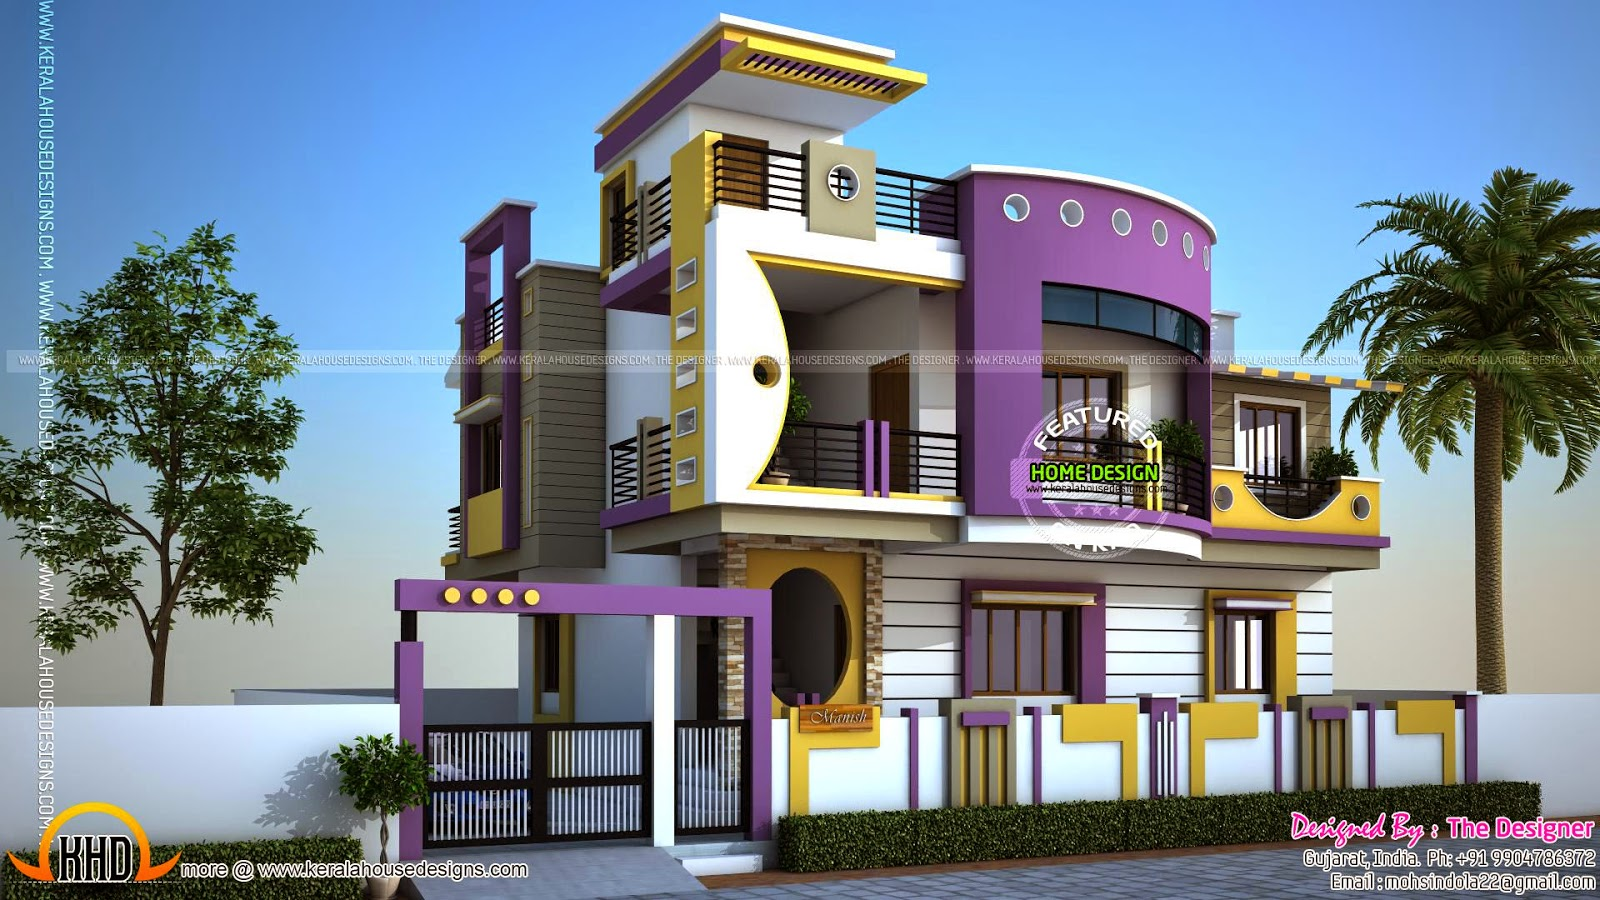 House exterior designs in contemporary style kerala home for Home exterior design